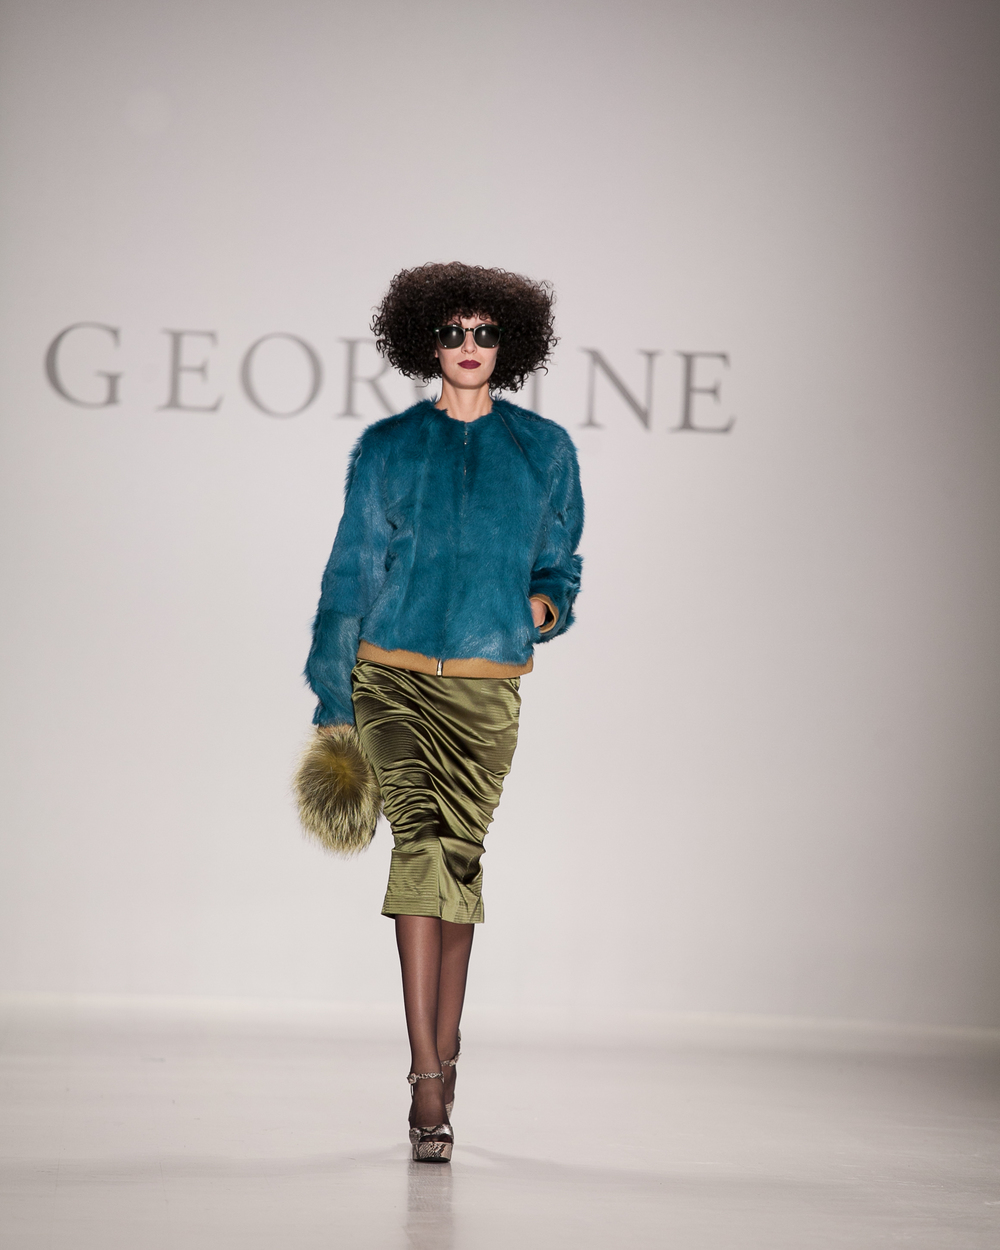 022-Georgine-New-York-Fashion-Week-Fall-Winter-2015-Shana-Schnur-Photography-022.jpg